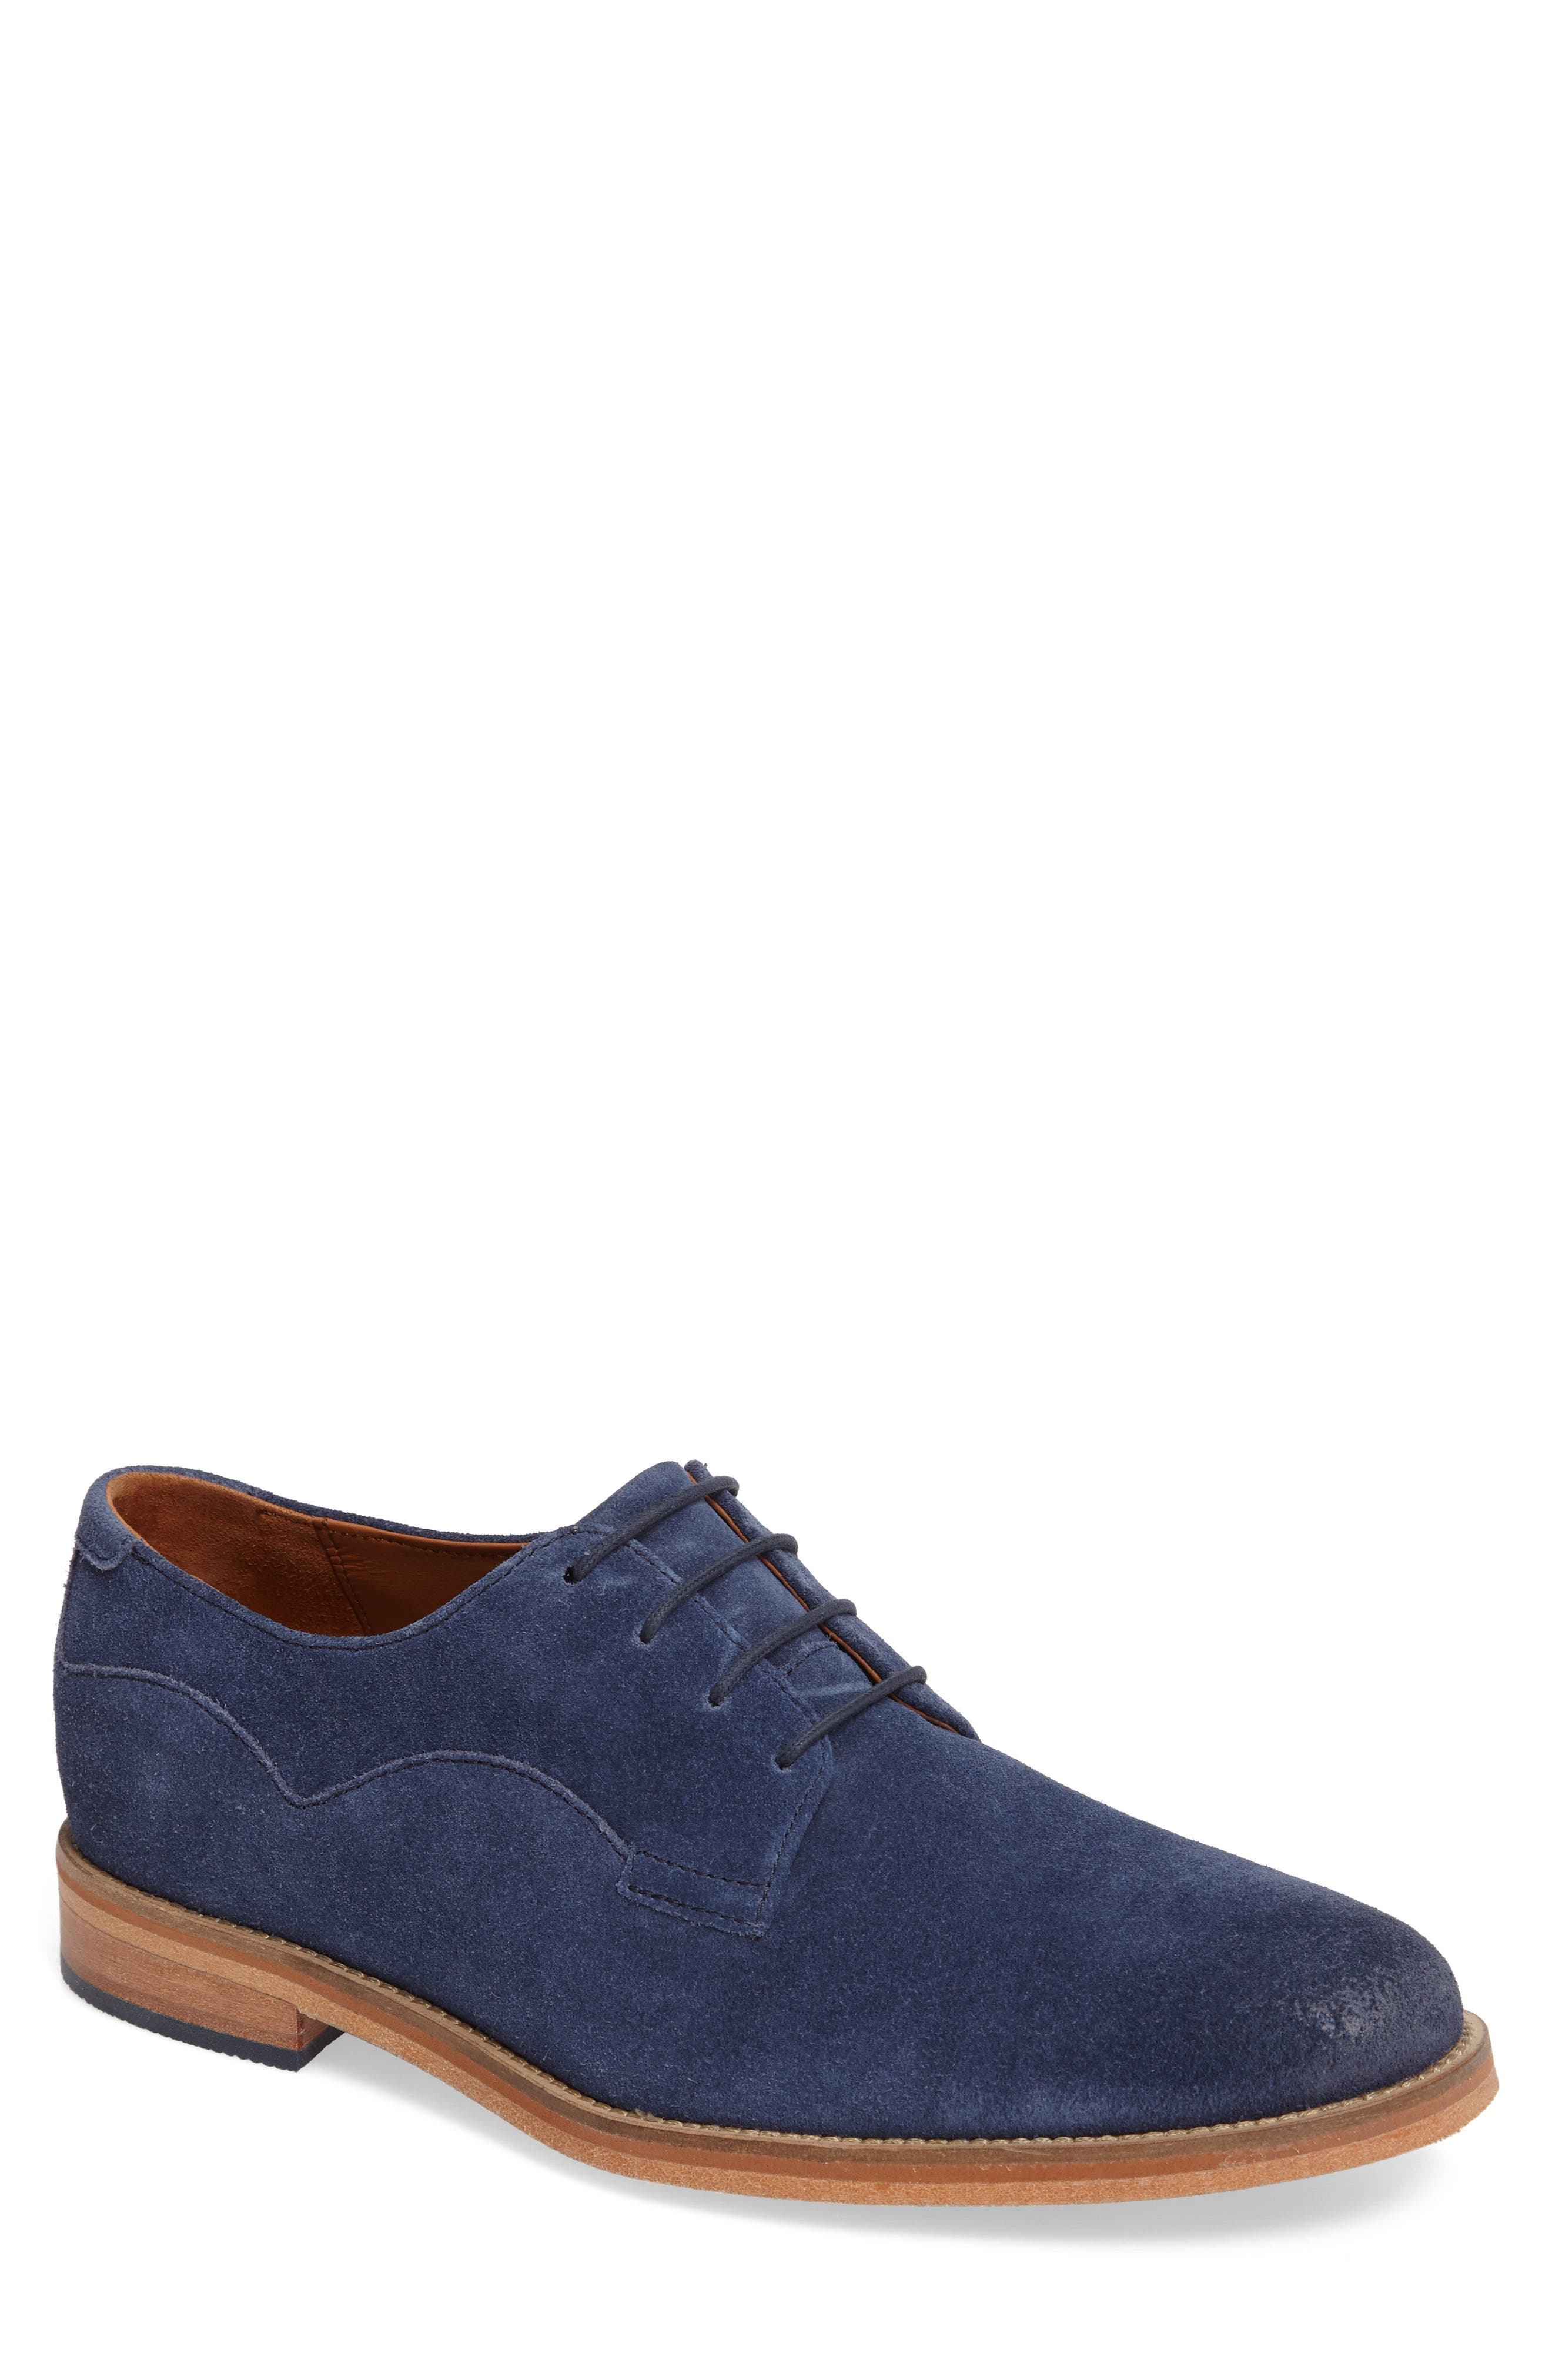 J SHOES Indi Buck Shoe